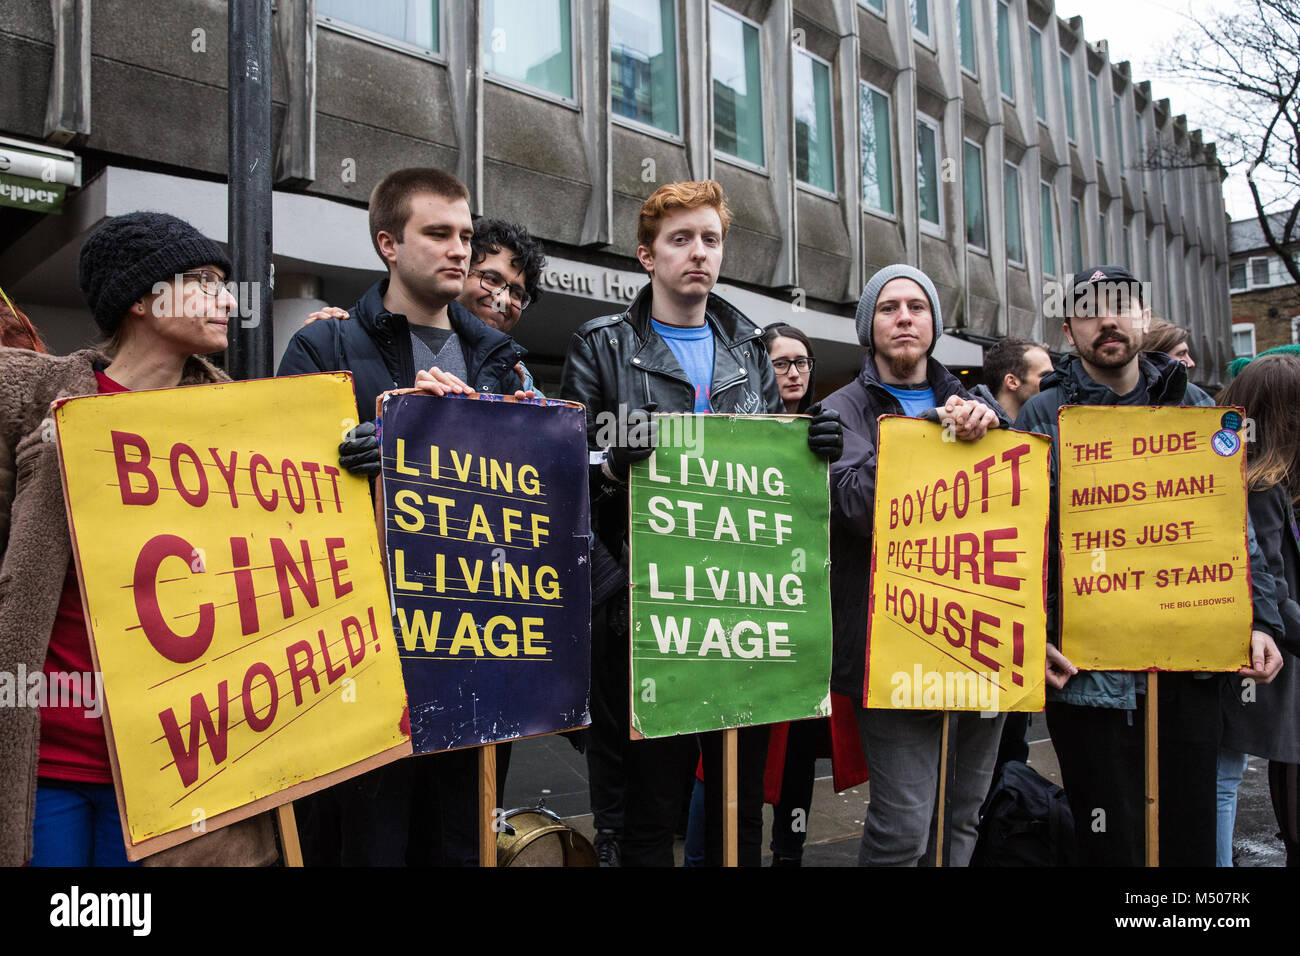 London, UK. 19th February, 2018. Cinema workers belonging to the BECTU trade union protest outside the head office - Stock Image